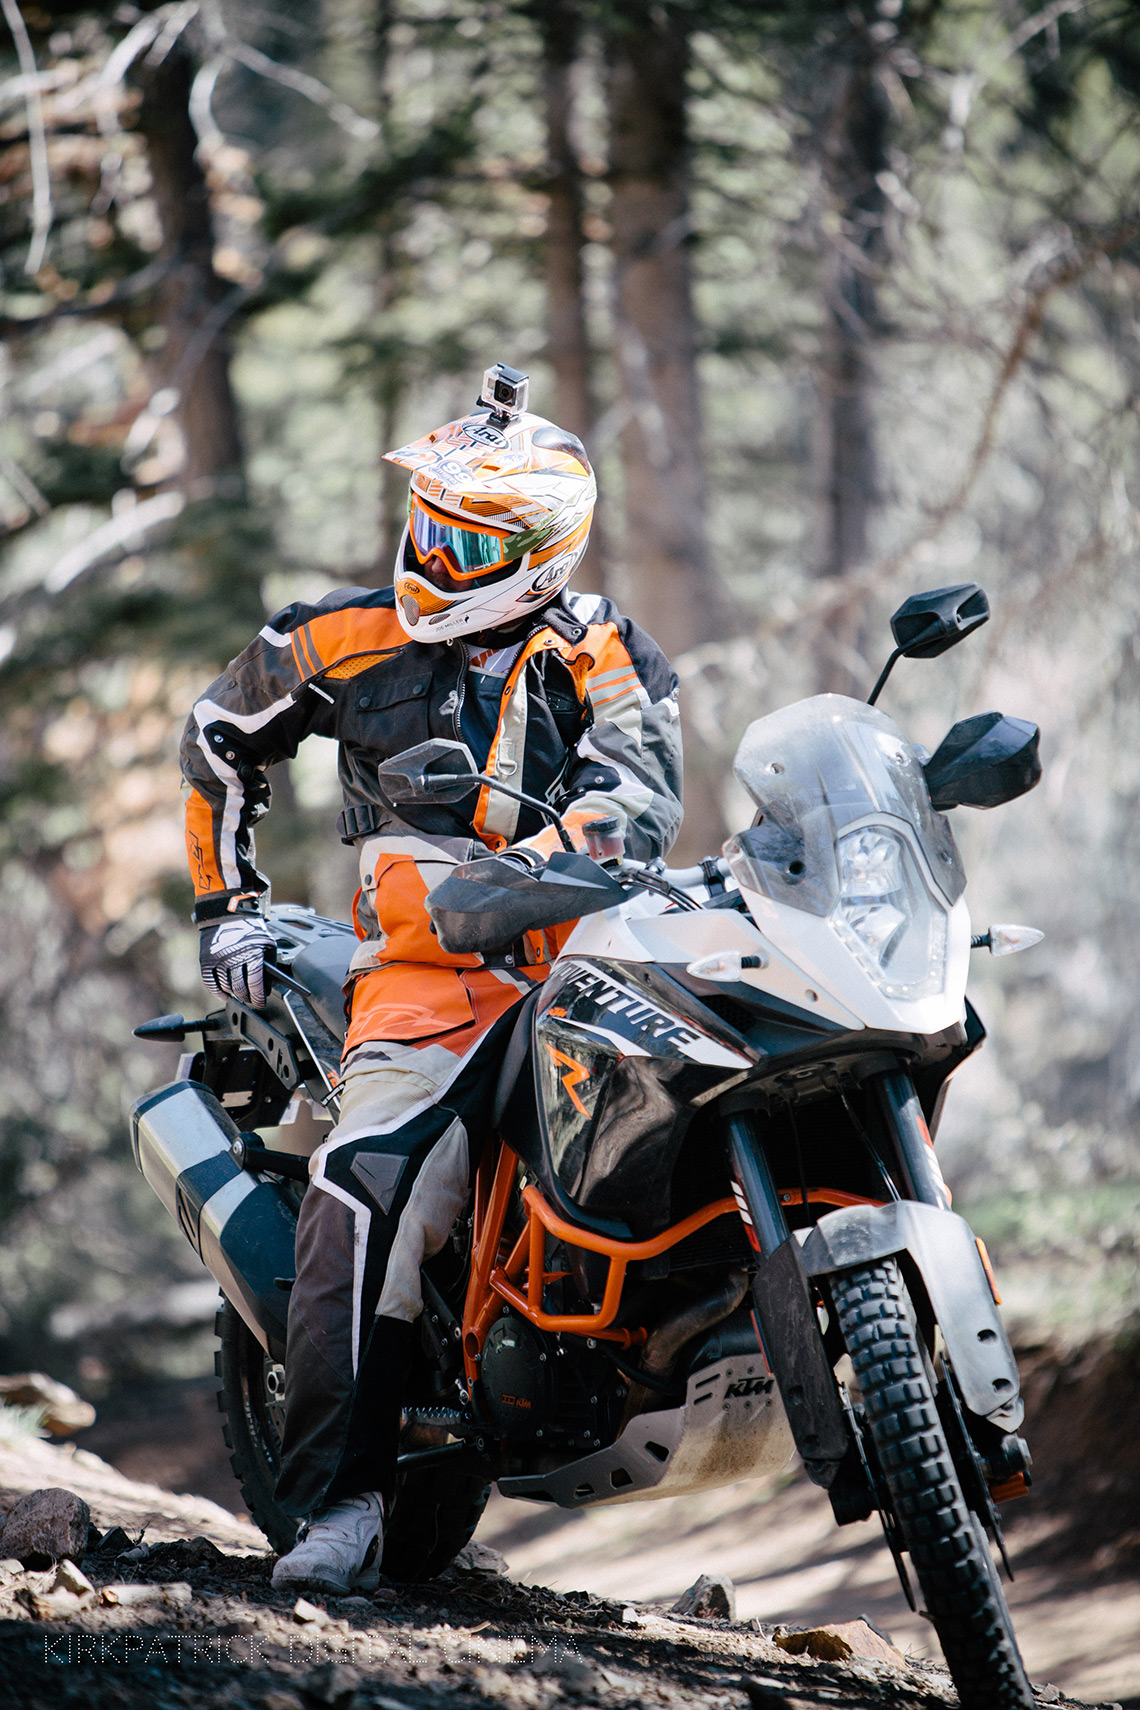 ktm adventure rider rally pre visit derestricted. Black Bedroom Furniture Sets. Home Design Ideas